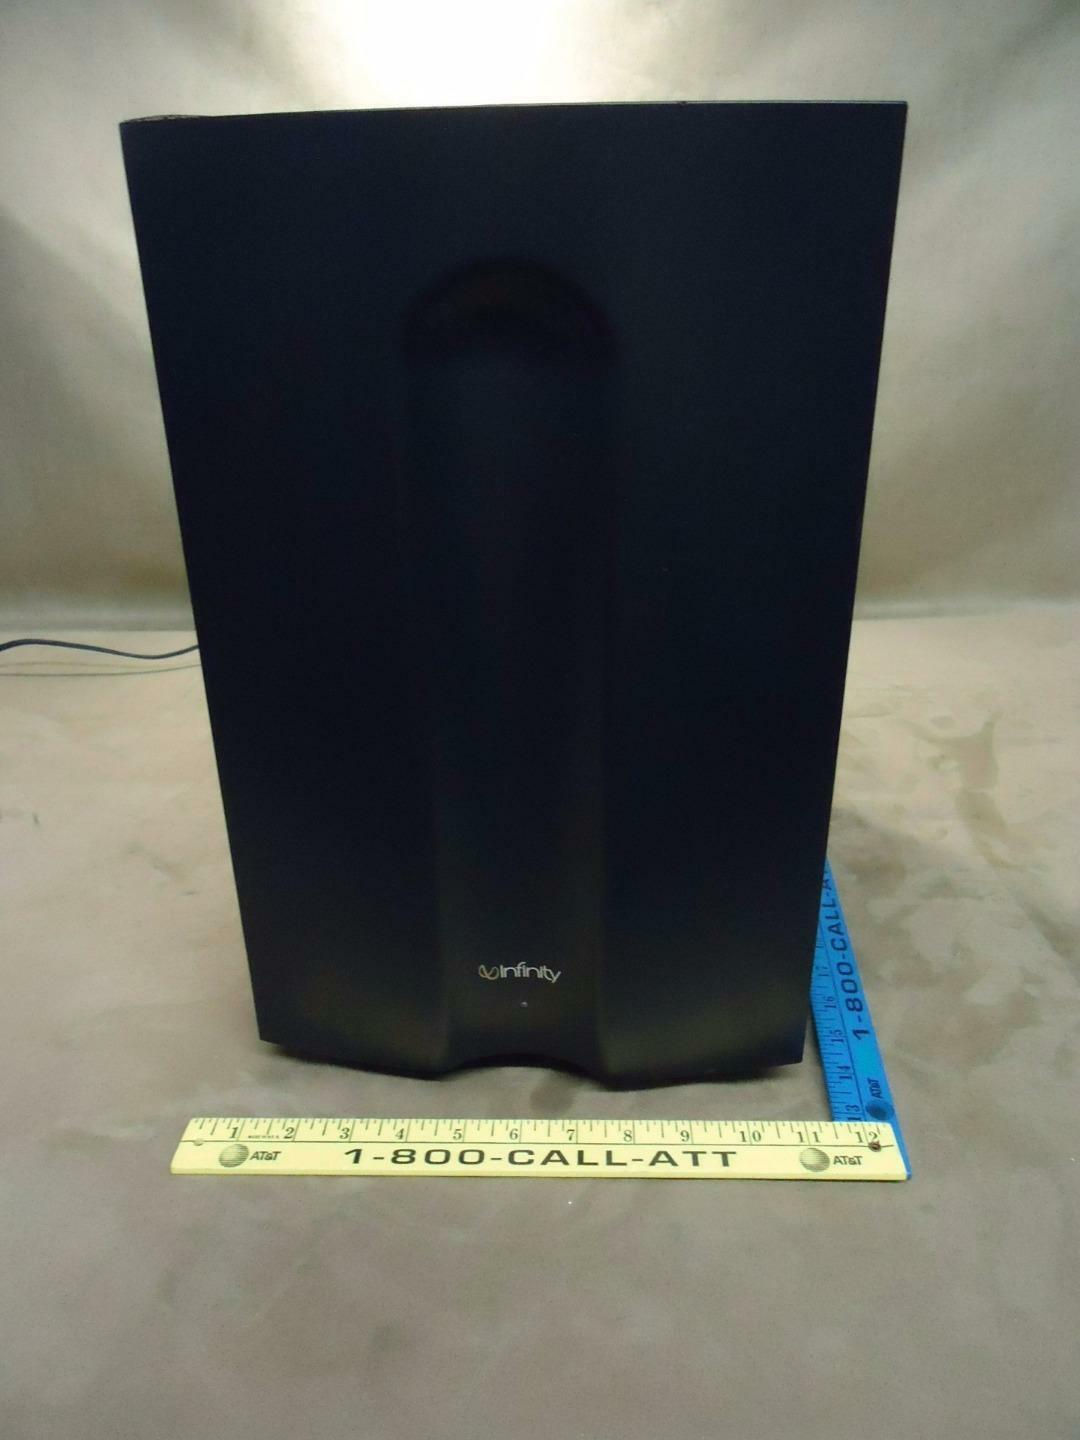 Infinity Powered SubWoofer Surround Sound Speaker Model TSS-450 - Used